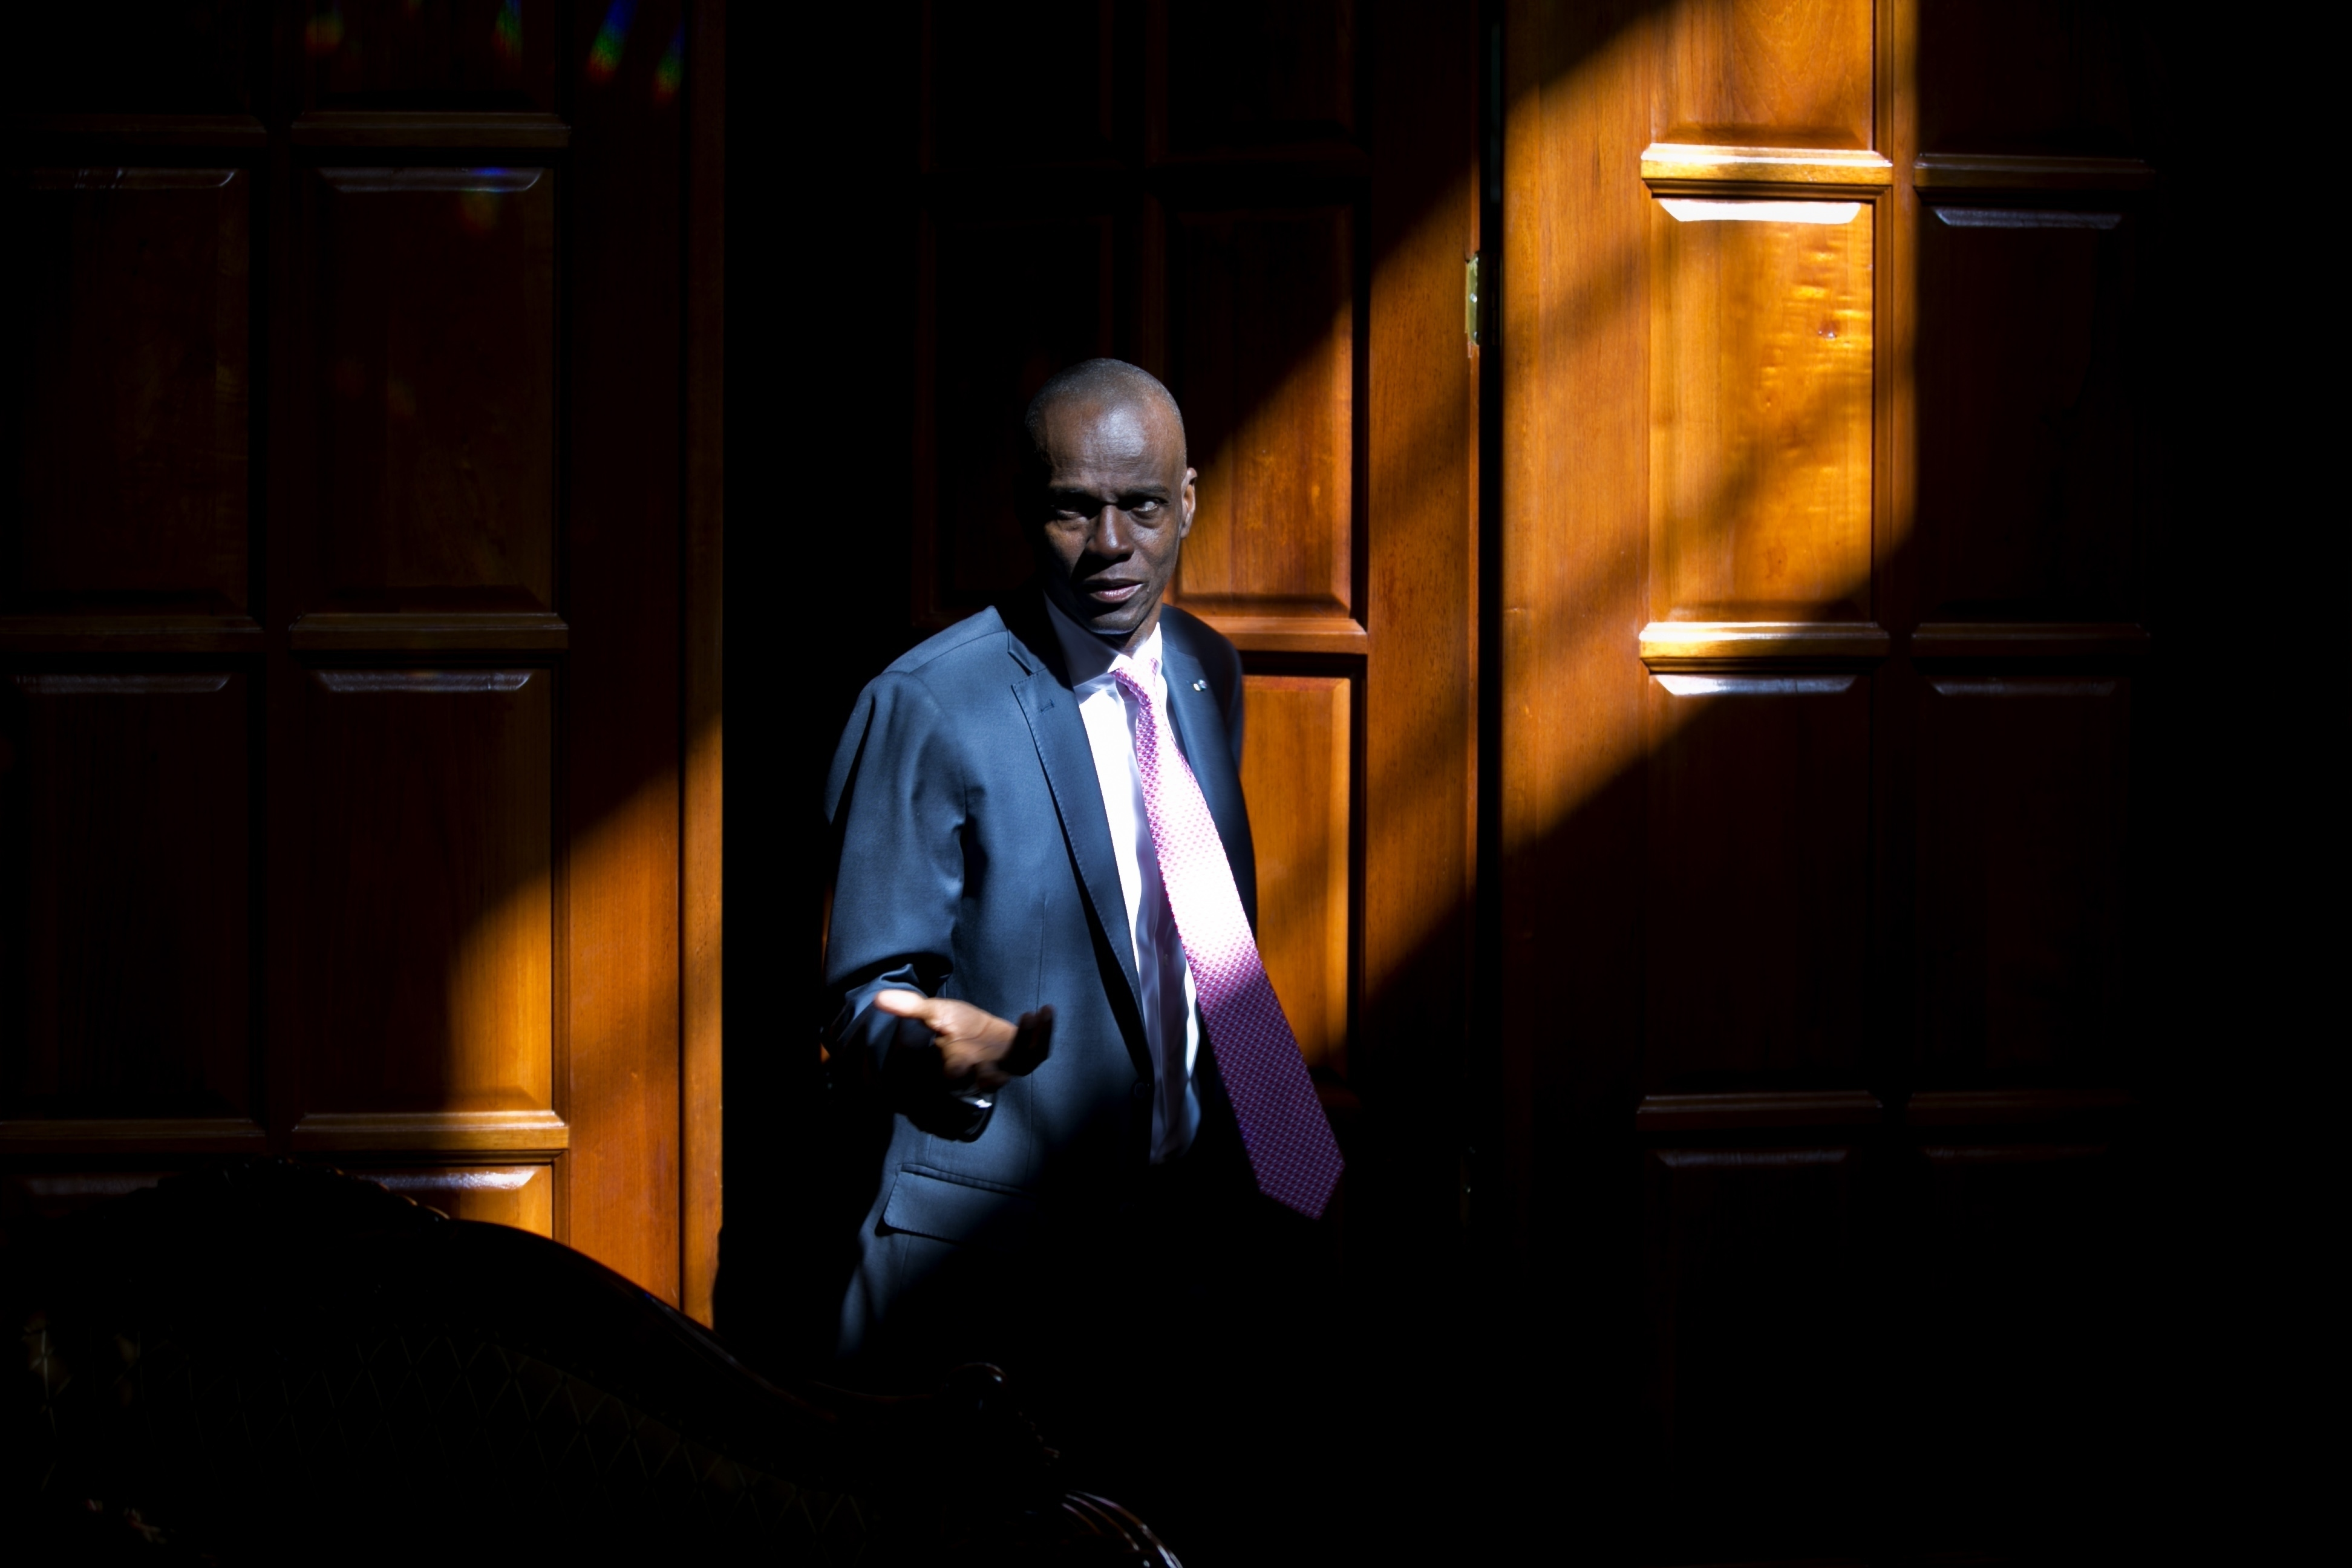 In this Feb. 7, 2020 file photo, Haitian President Jovenel Moise arrives for an interview at his home in Petion-Ville, a suburb of Port-au-Prince, Haiti.